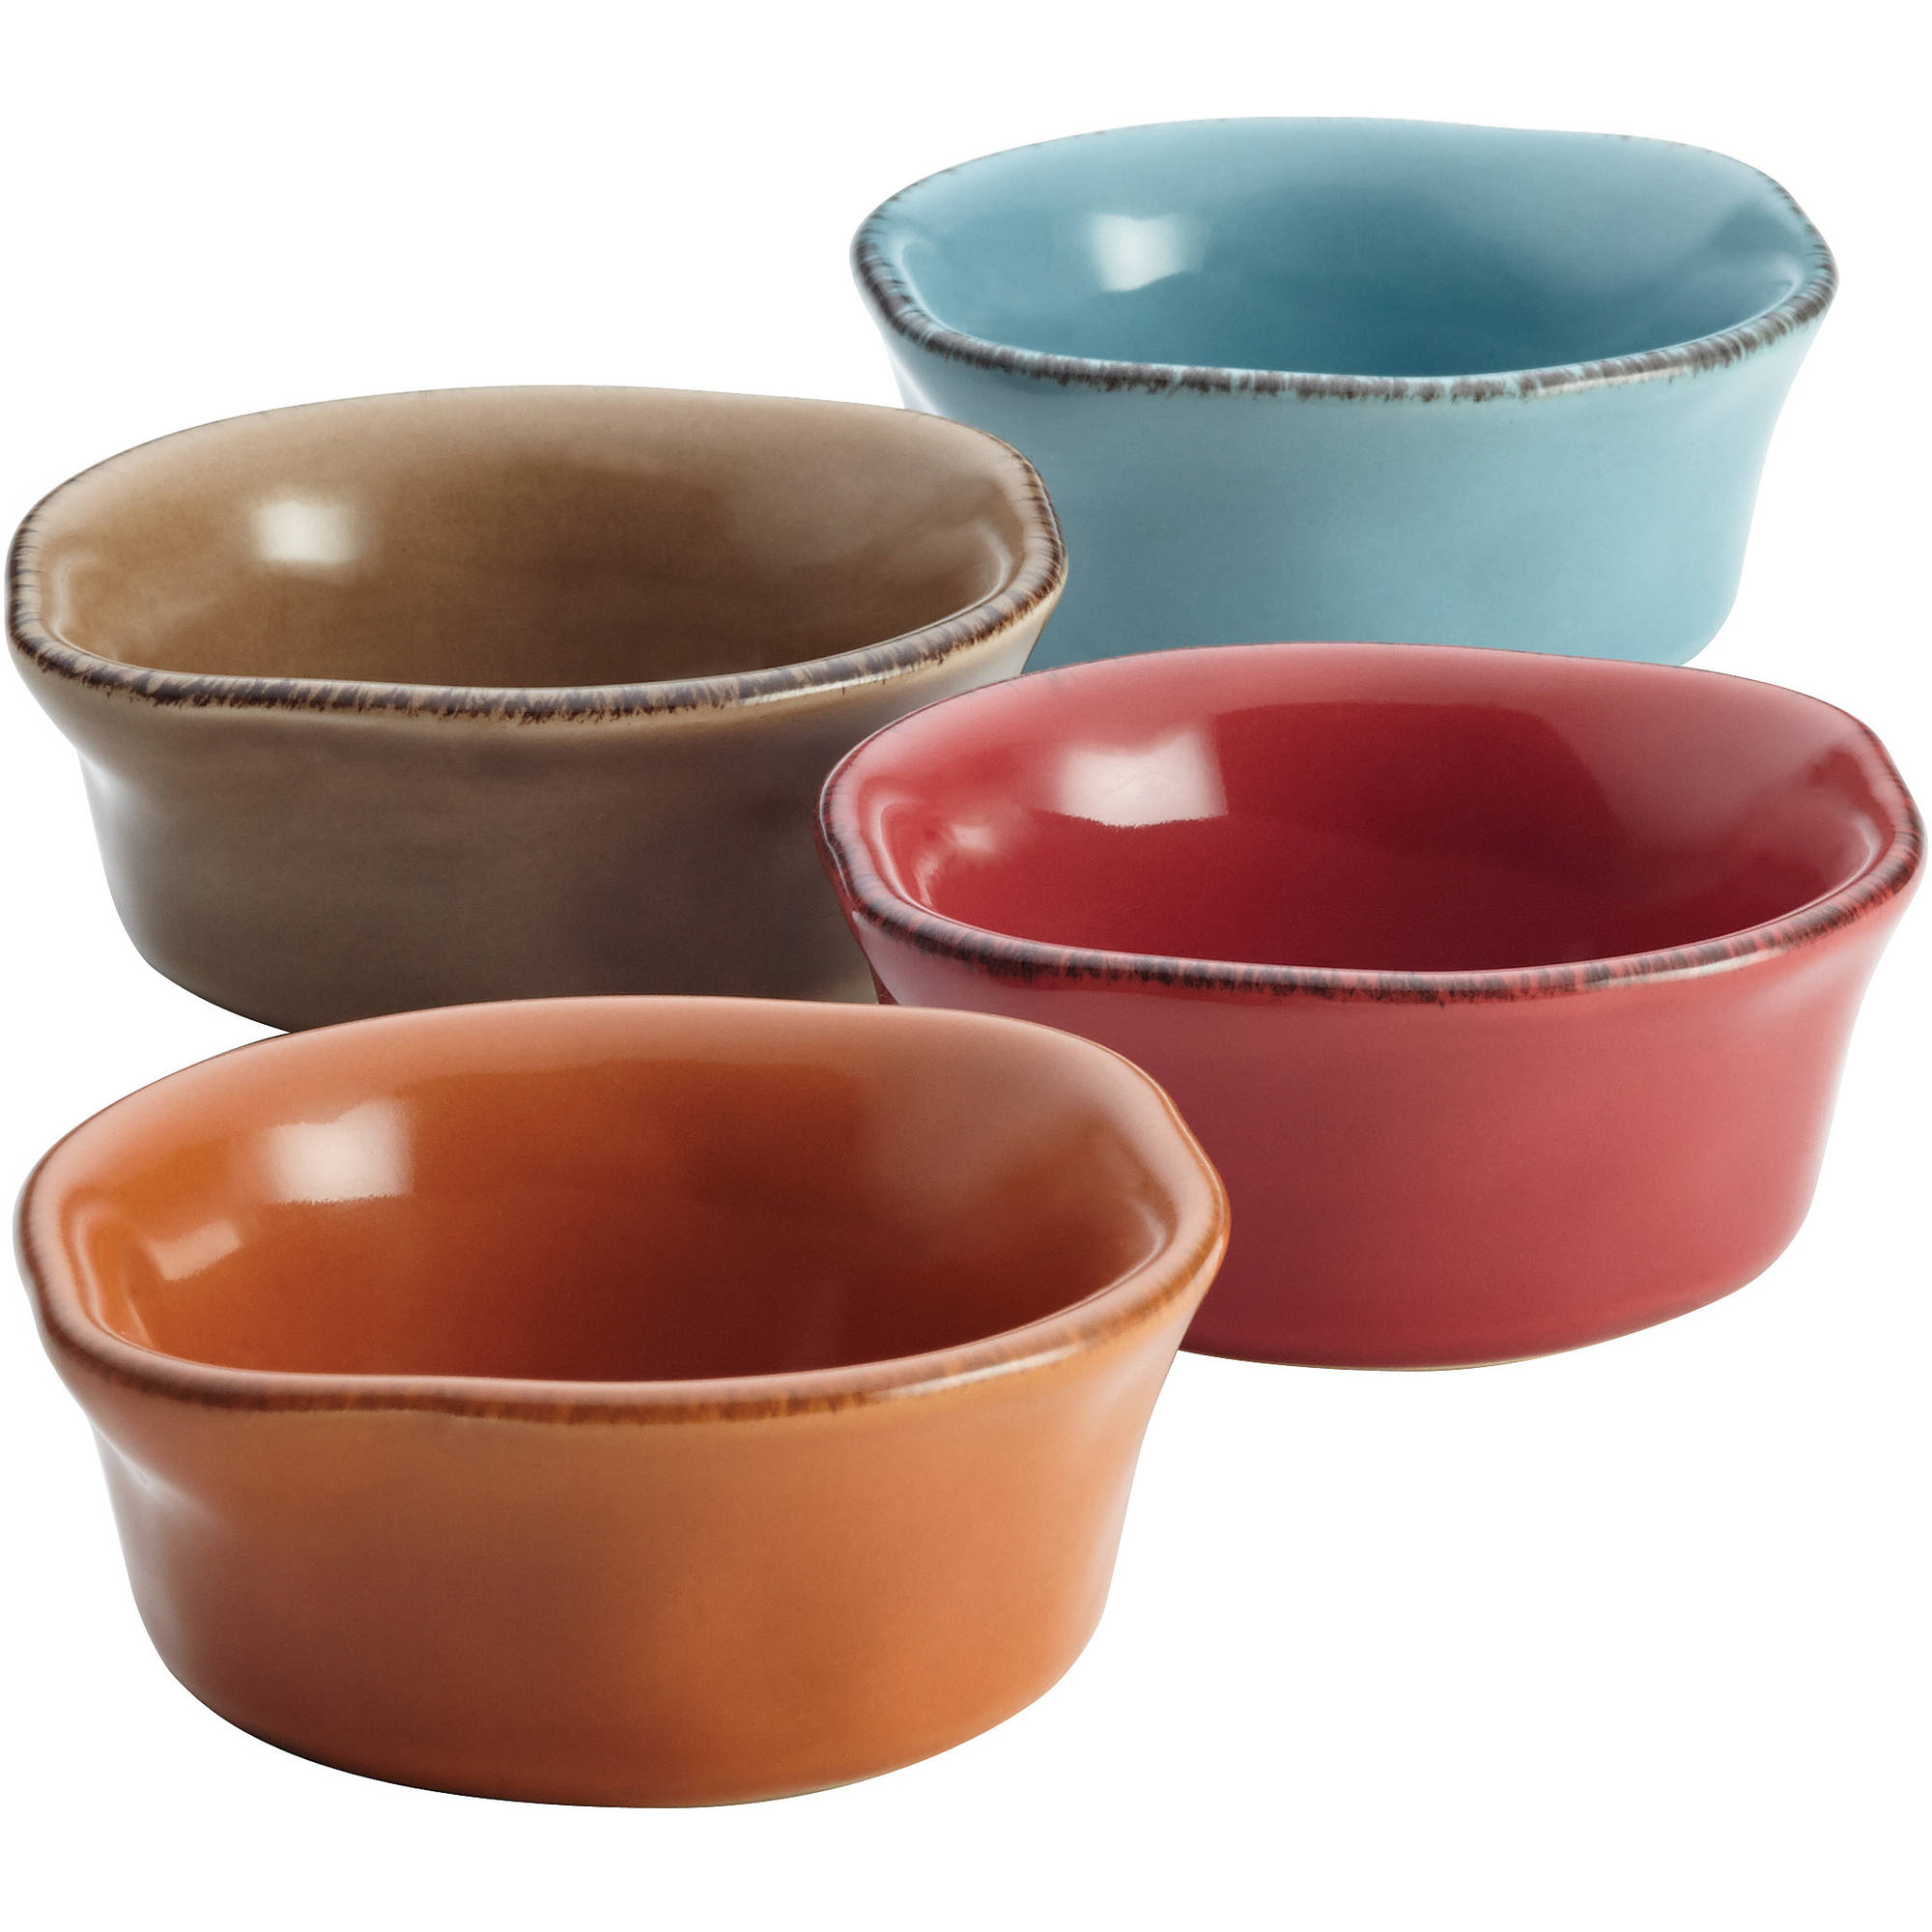 Rachael Ray Cucina Stoneware 4-Piece Dipping Cup Set